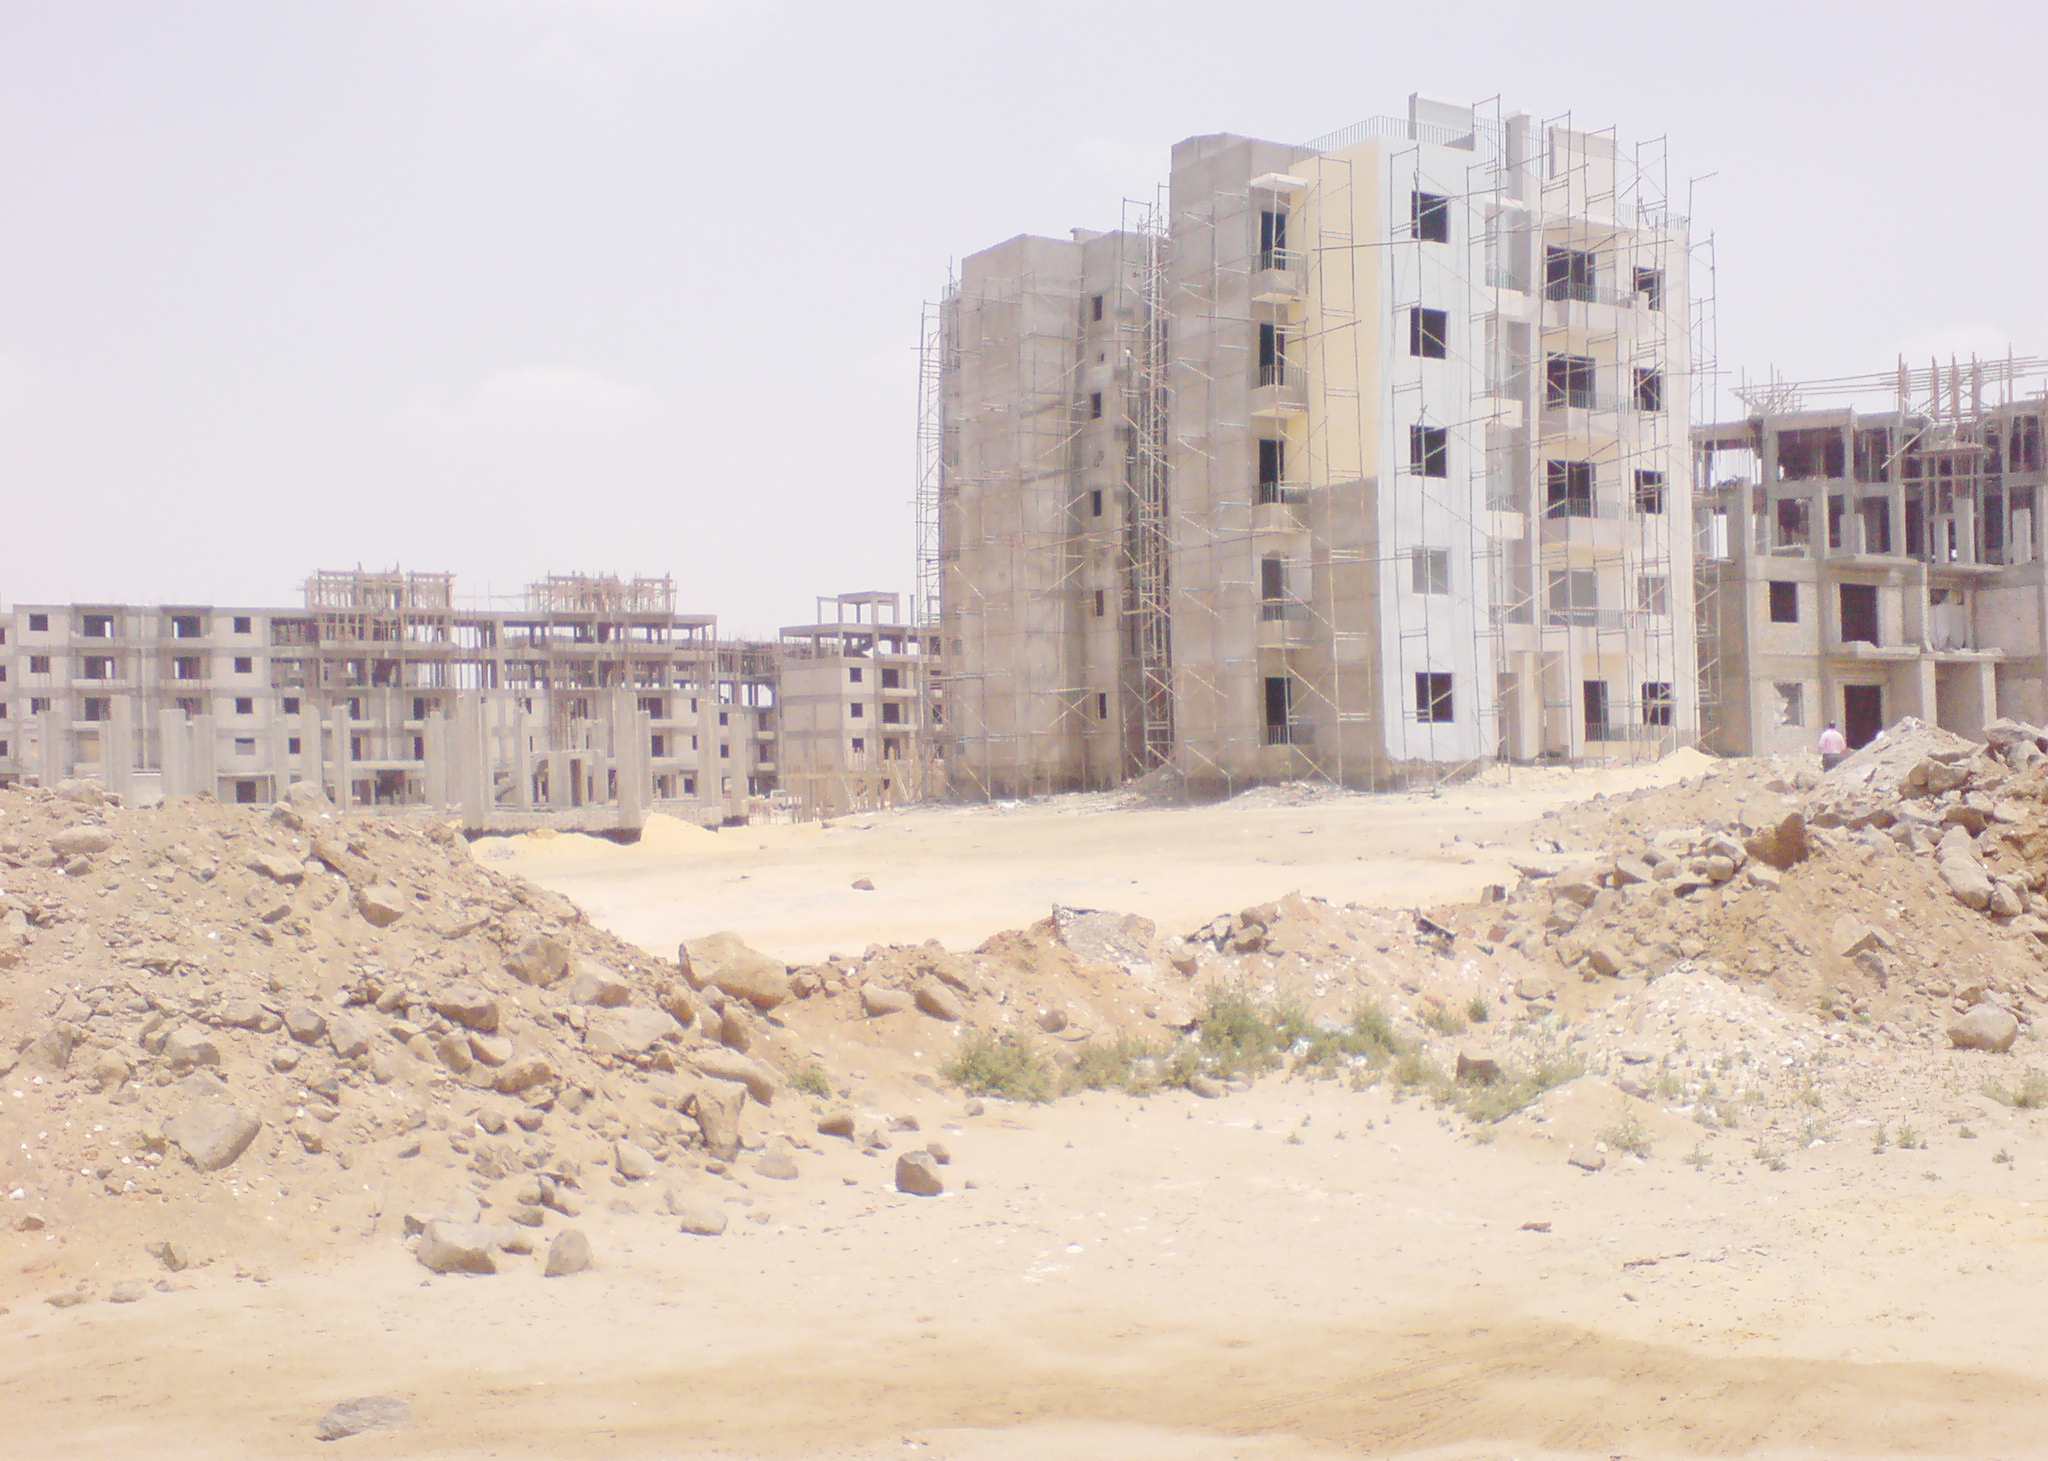 The Ministry of Housing froze all standing housing projects, including the second phase of a plan to build one million units and another Central Agency for Construction plan for 50,000 units in the provinces